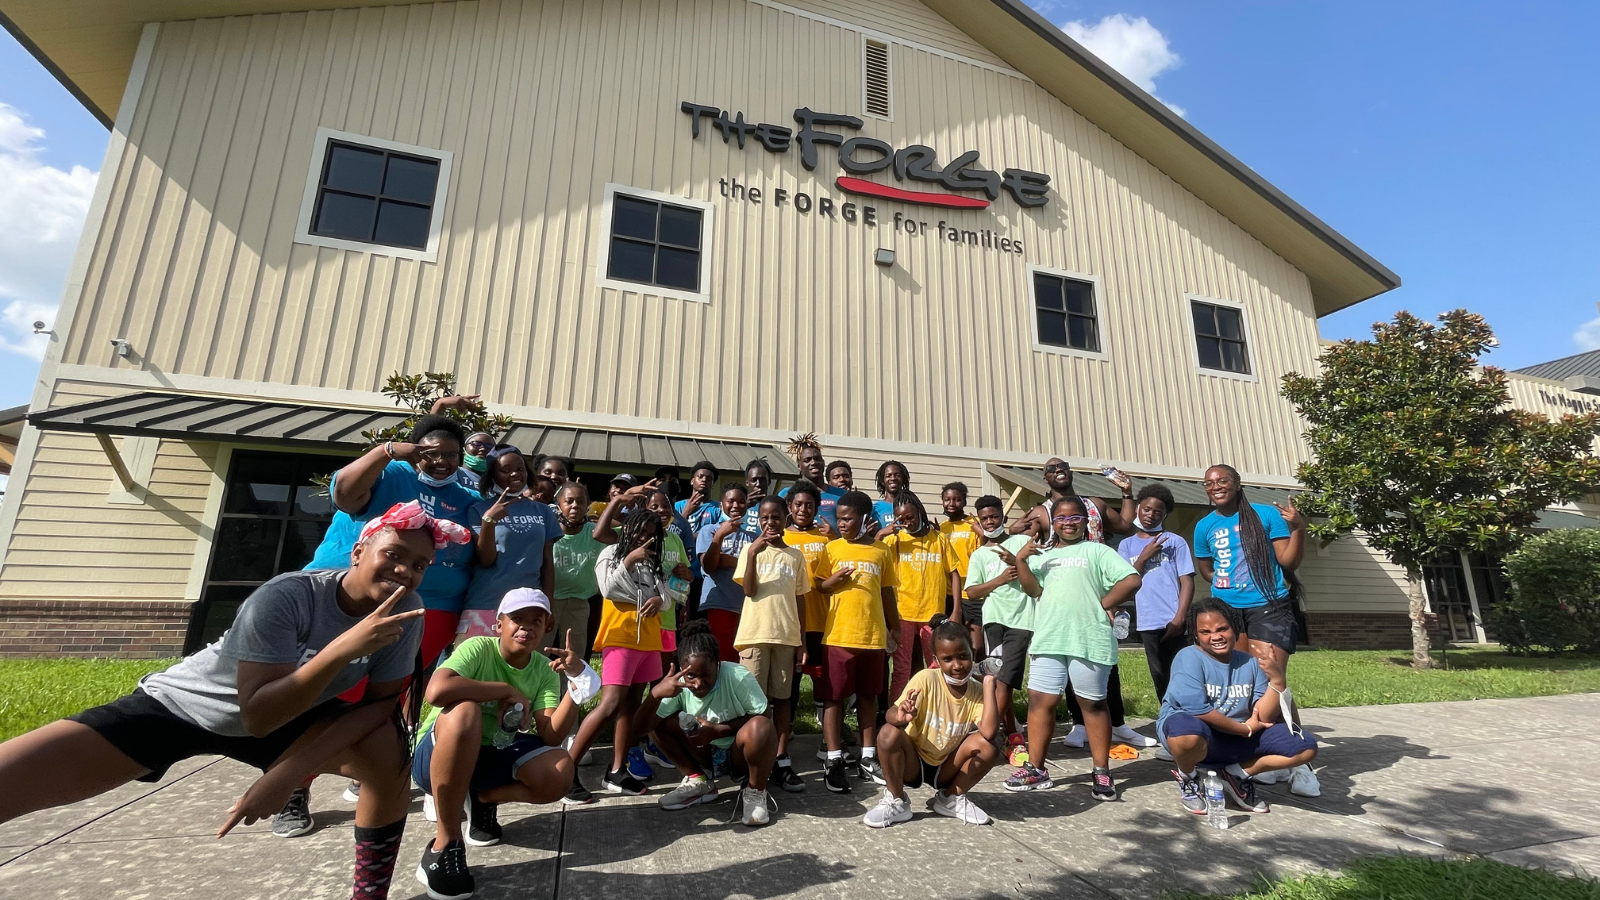 Forge For Families Celebrates Summer with SaulPaul